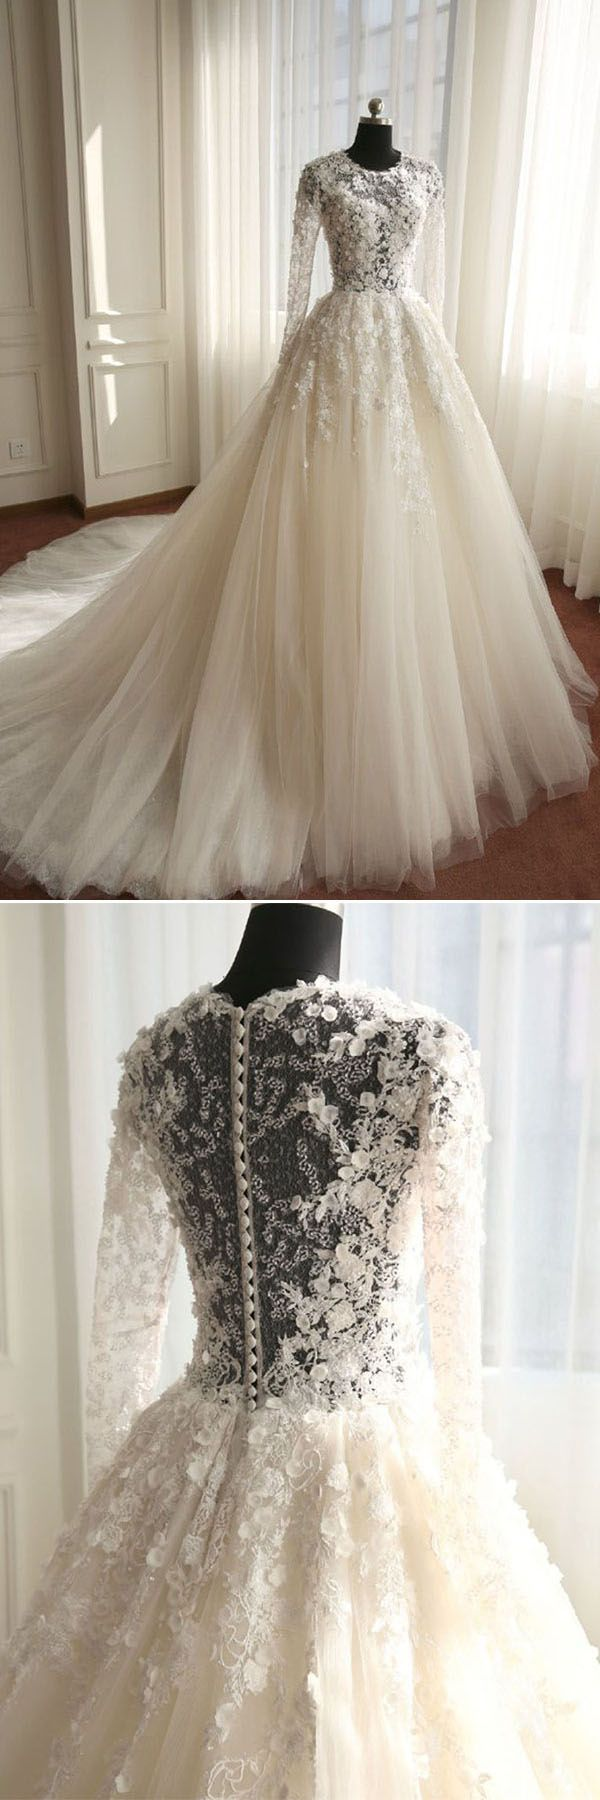 Wedding dresses with train  wedding dresses  long sleeves wedding dresses lace wedding